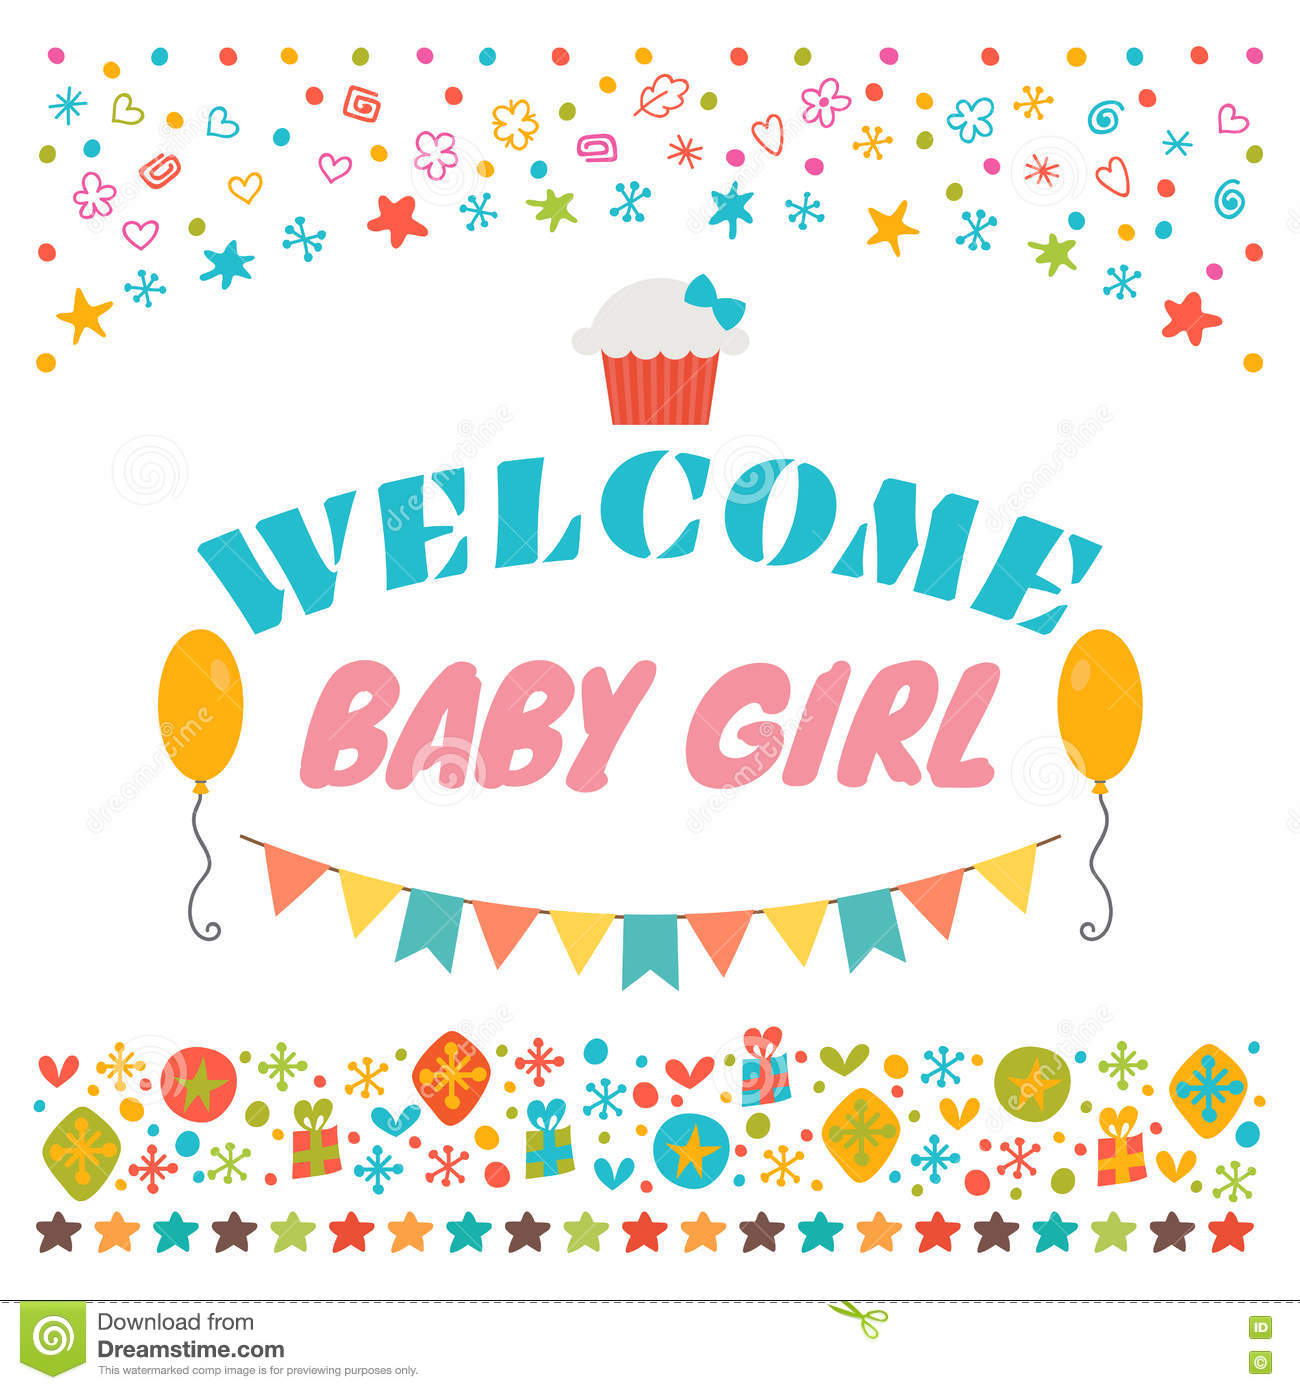 Welcome baby girl announcement card baby shower greeting card welcome baby girl announcement card baby shower greeting card kristyandbryce Images